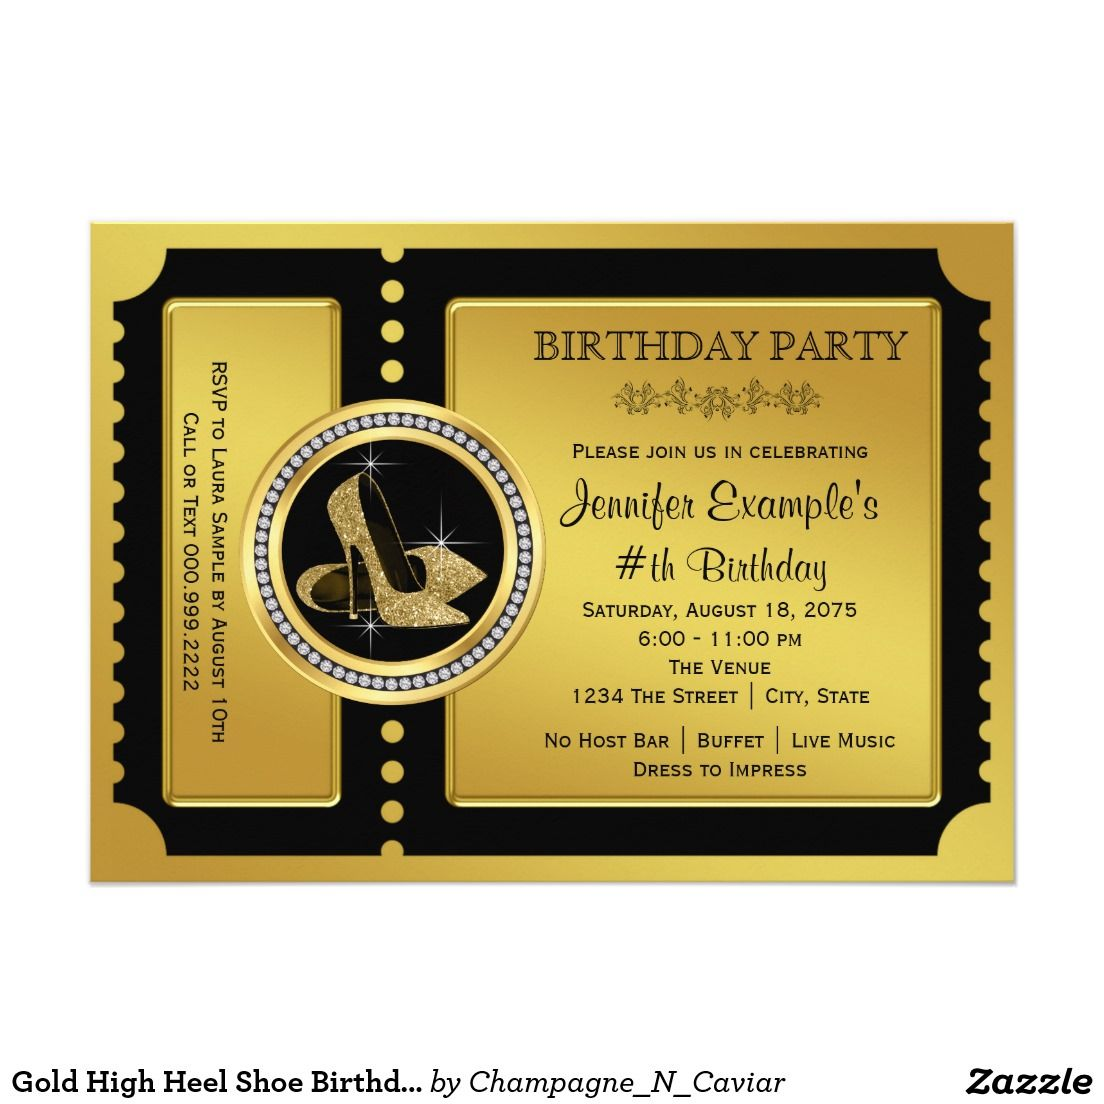 Gold High Heel Shoe Birthday Party Card | Birthdays and Party ...